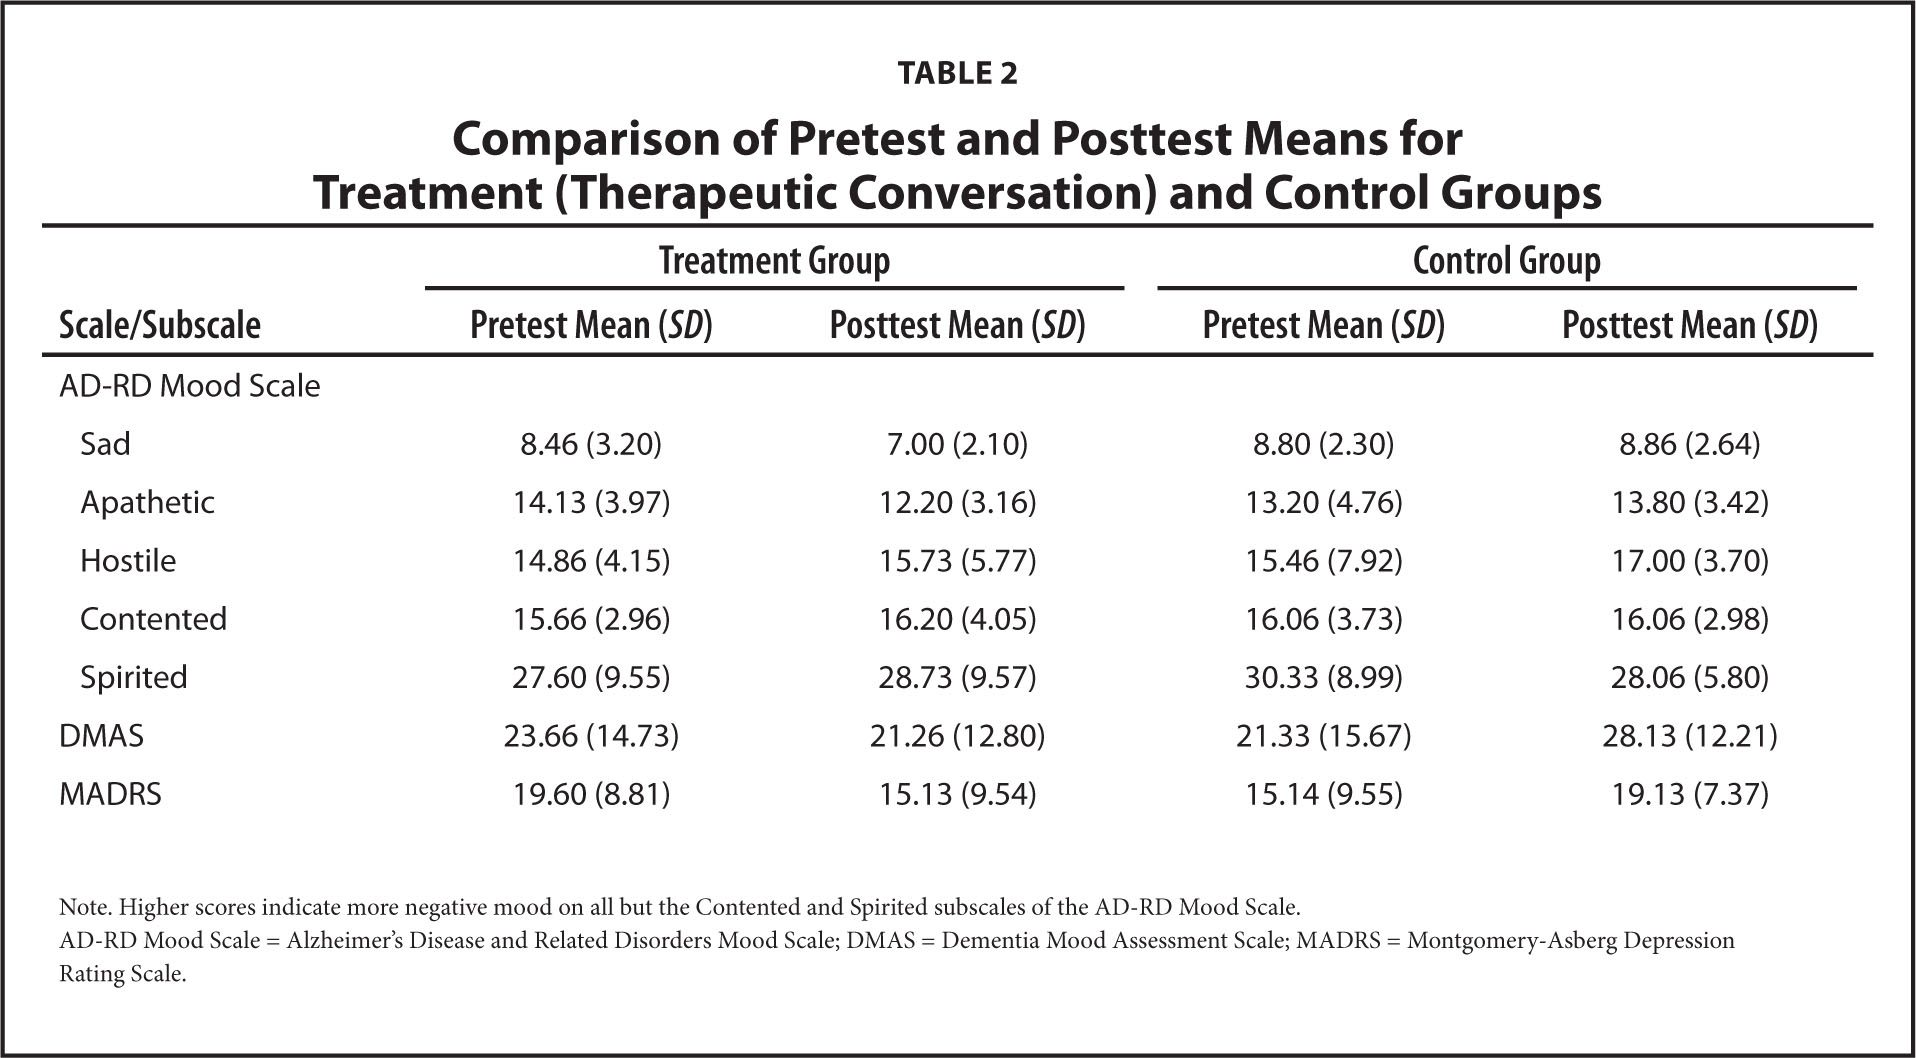 Comparison Of Pretest And Posttest Means For Treatment (Therapeutic  Conversation) And Control Groups